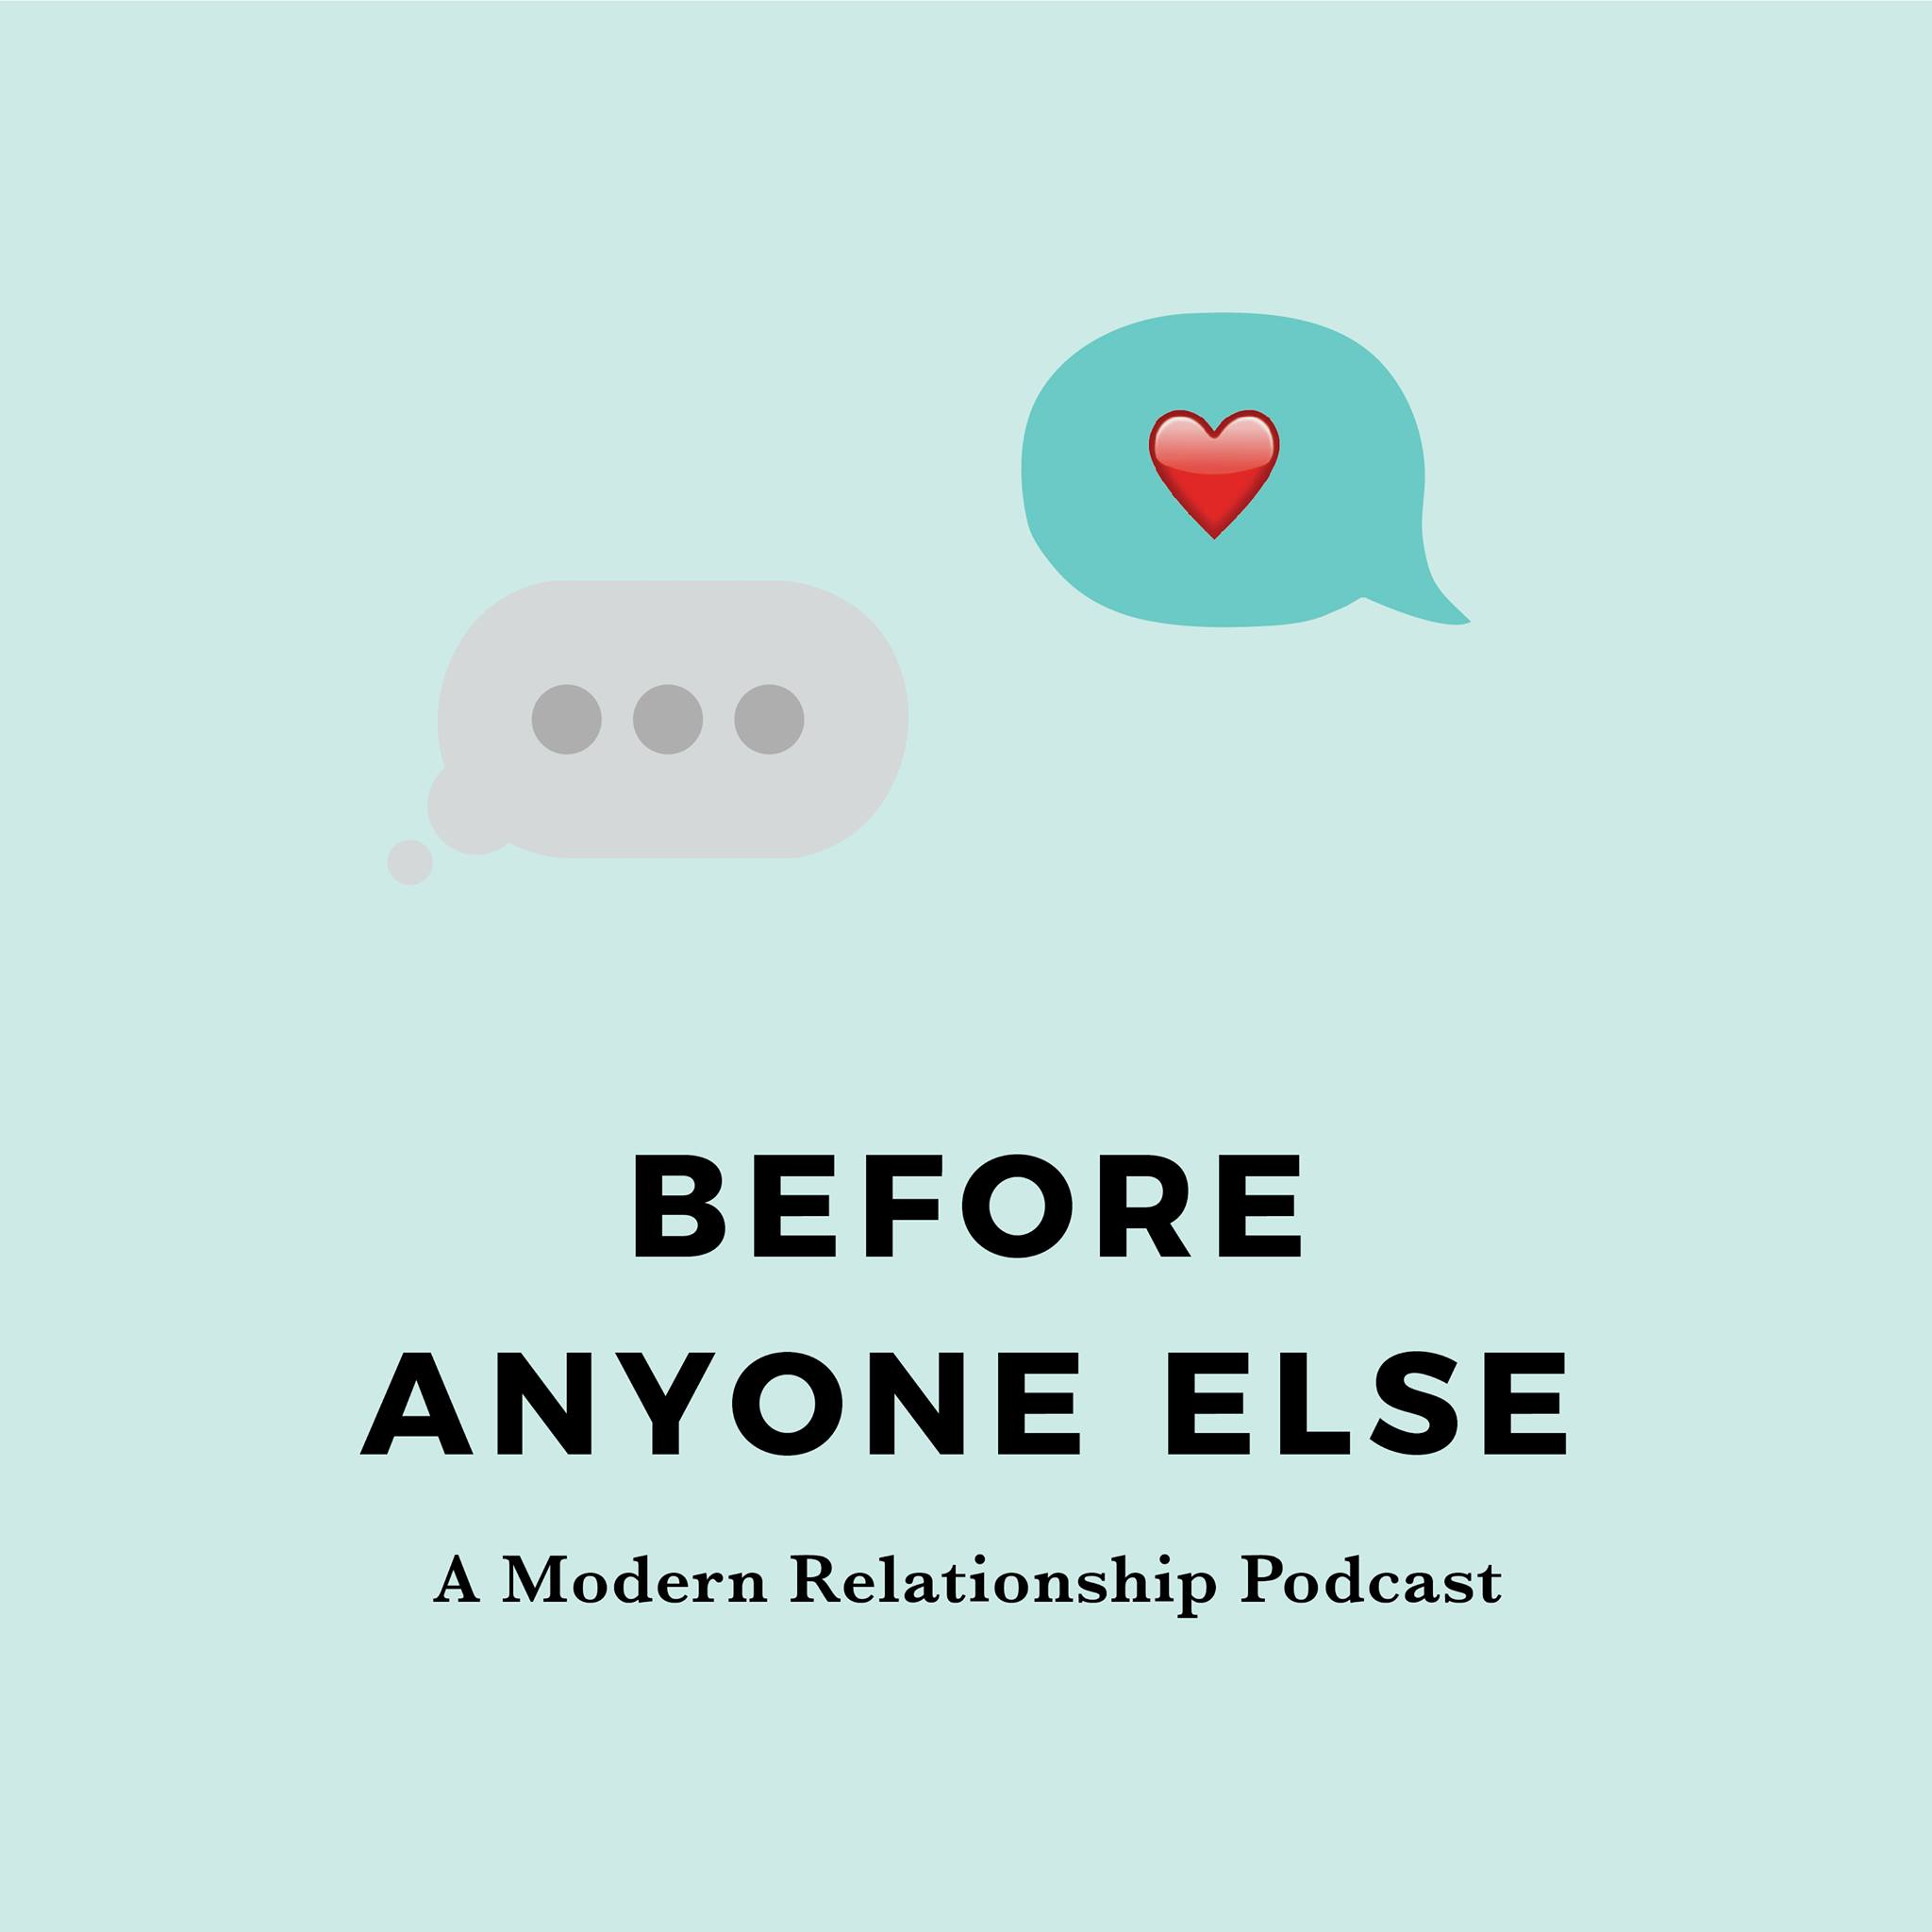 relationship podcast before anyone